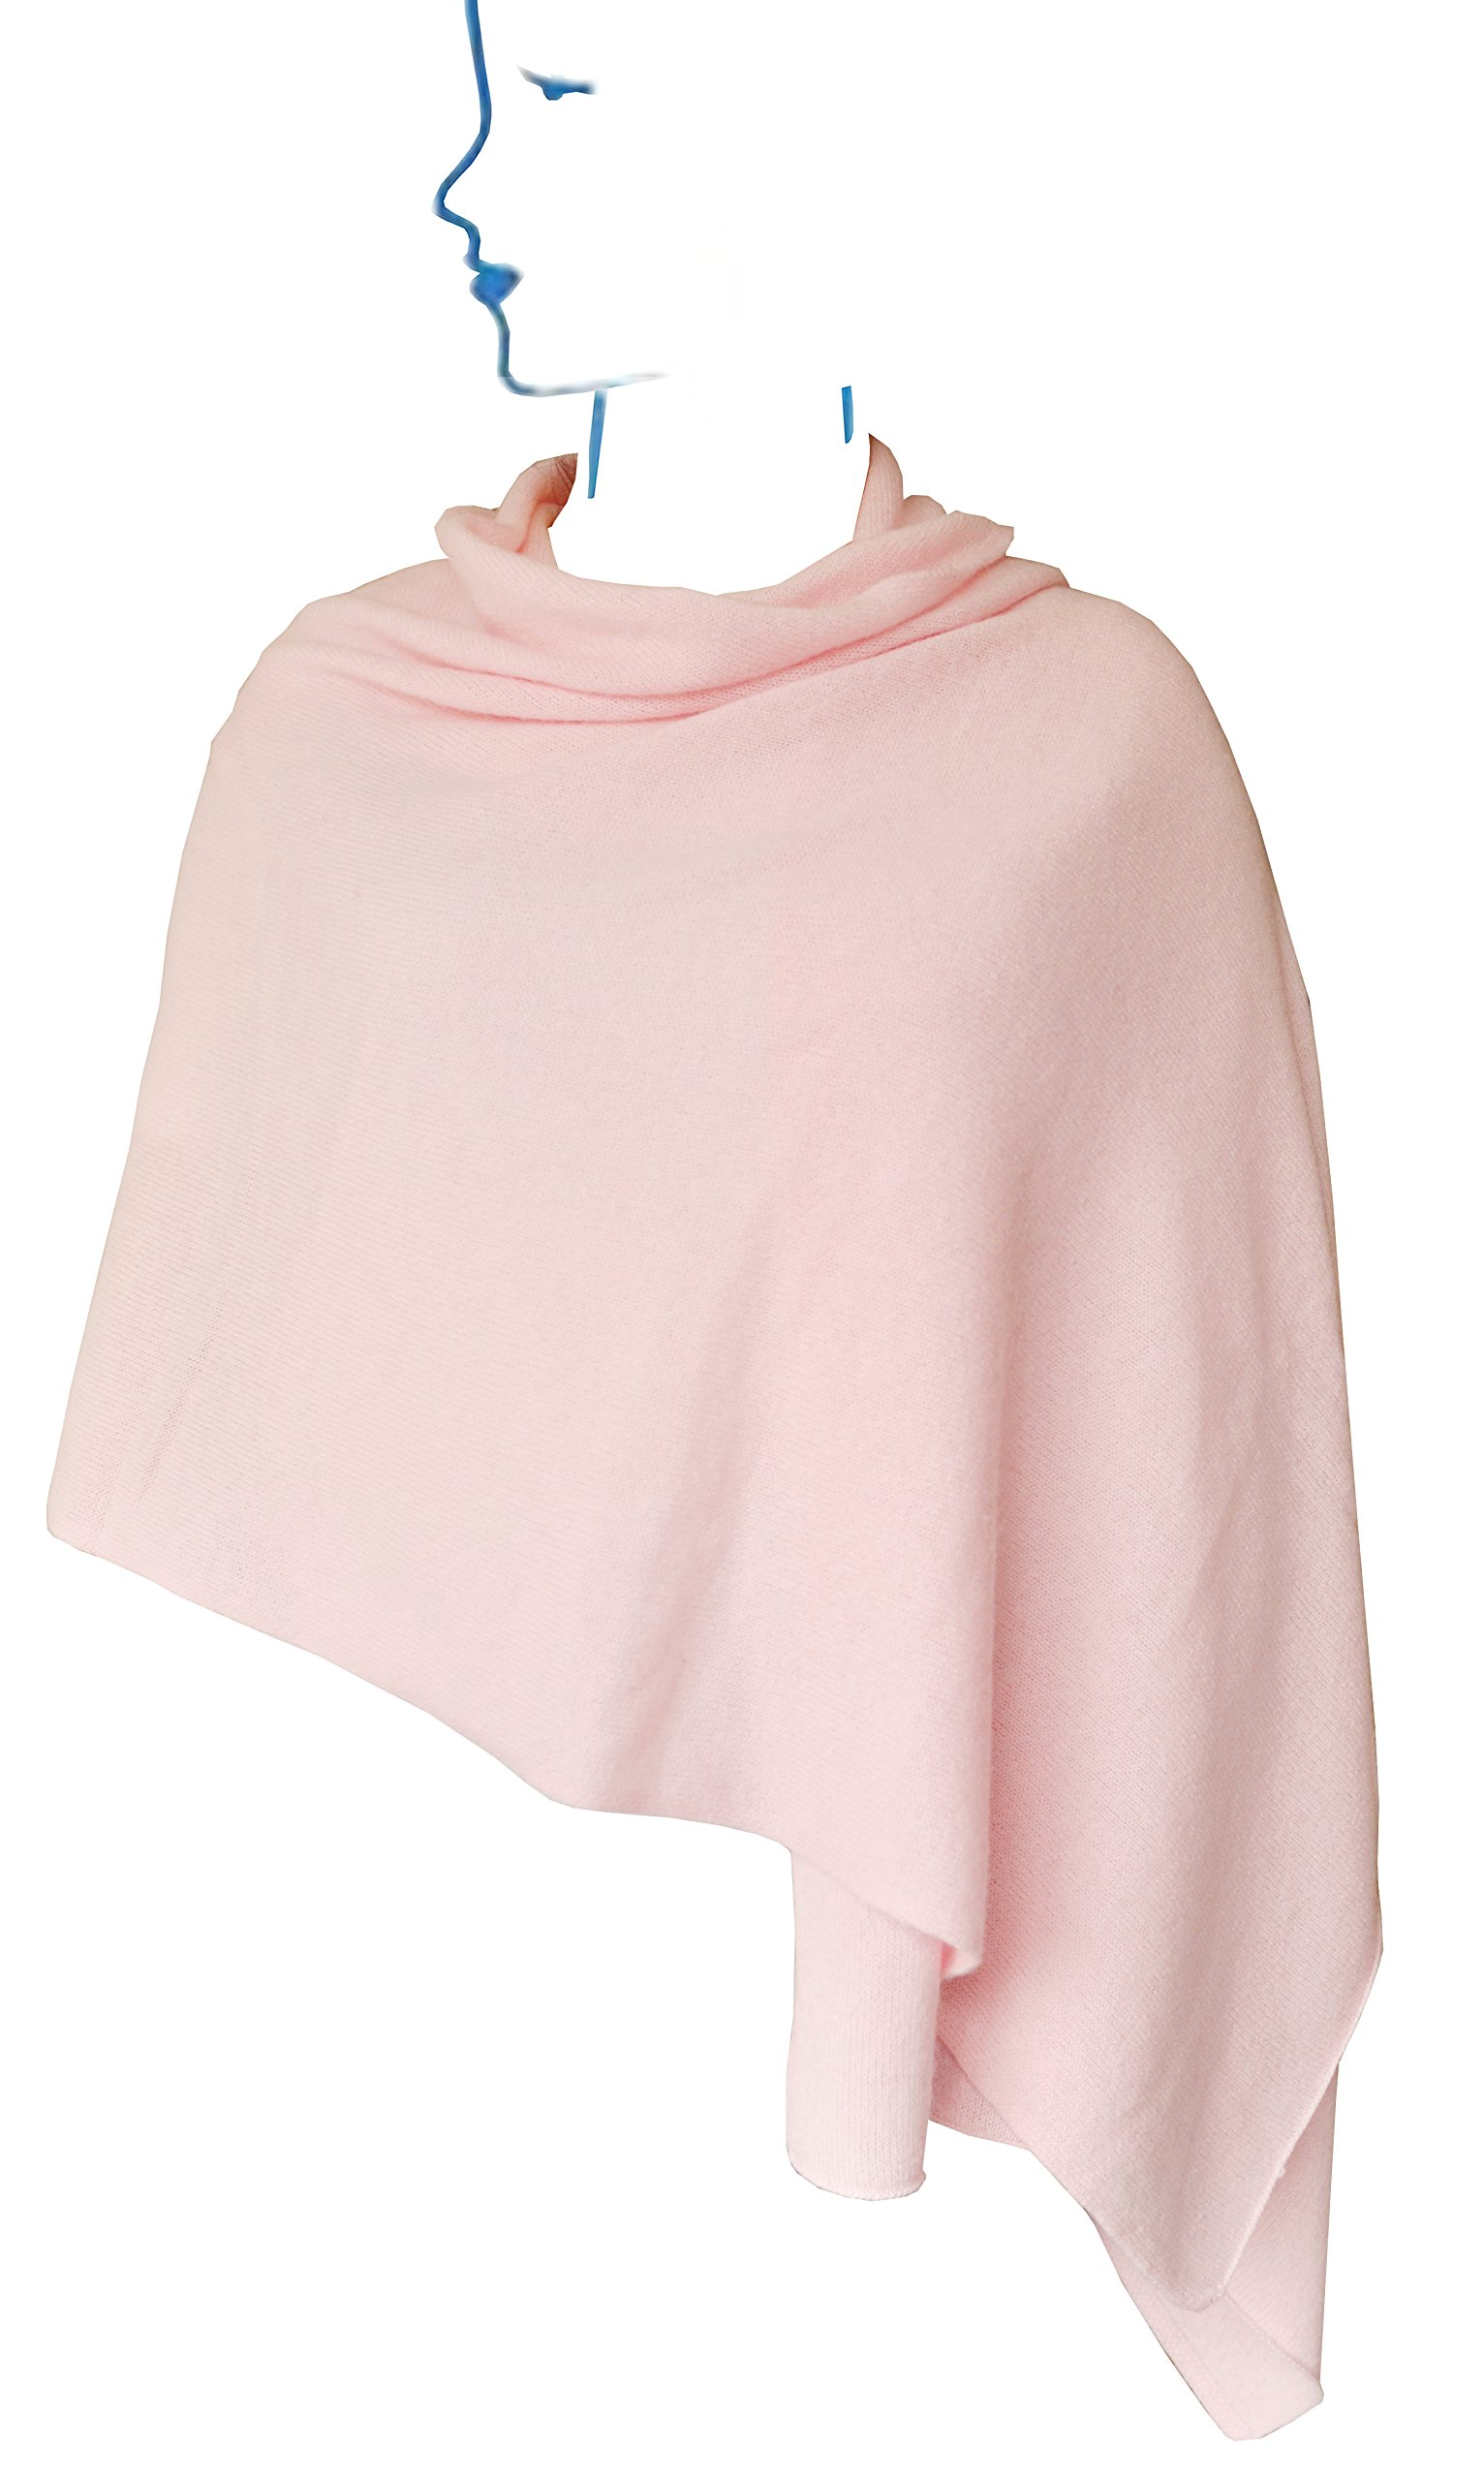 Ellettee, Pink 100% Cashmere Knitted Scarf Classic Premium Shawl Luxurious Elegant Solid Color Wrap Art Oversized Shawl, Oblong